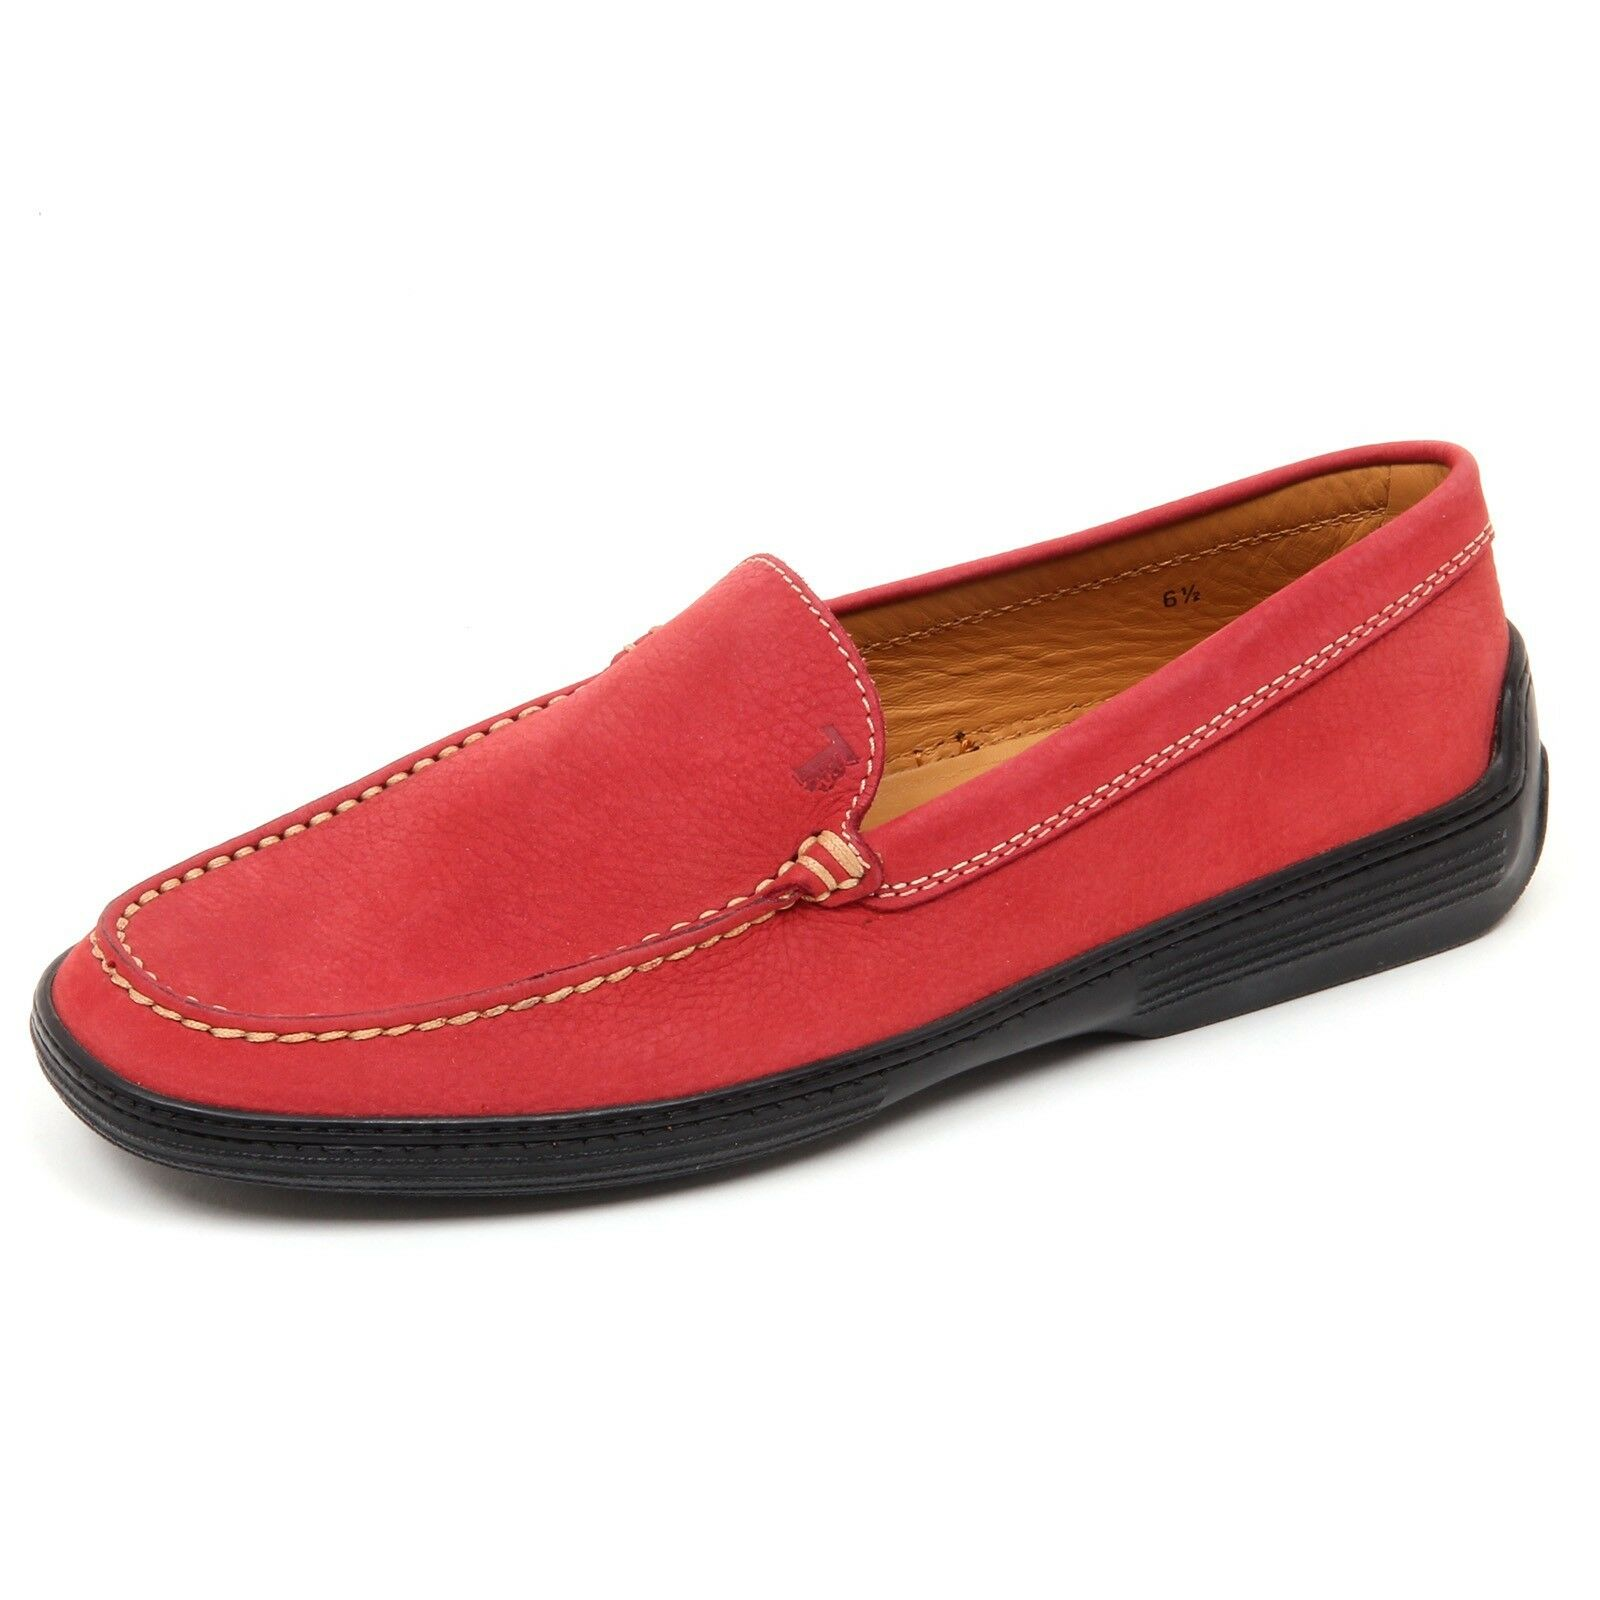 D2408 mocassino barca loafer uomo TOD'S RESTYLING rosso loafer barca shoe man 940b9d